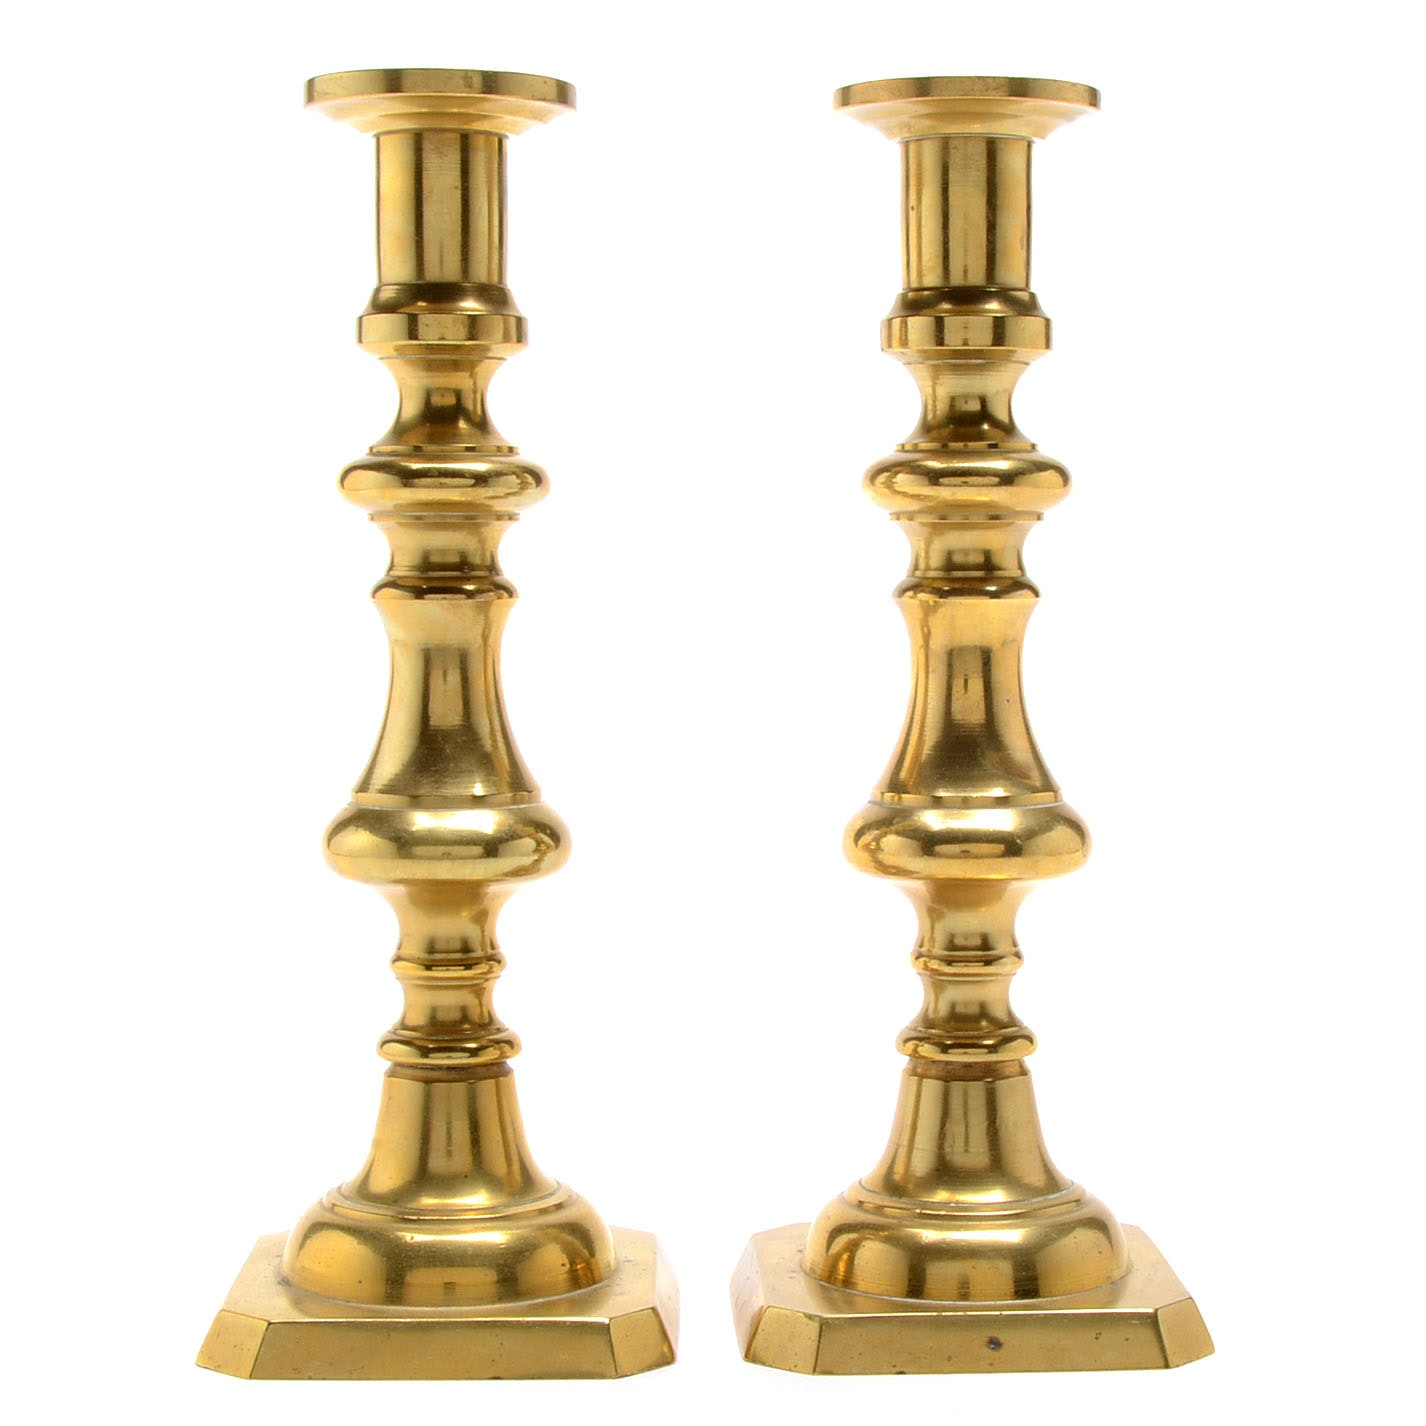 Antique Brass Push-Up Candle Holders